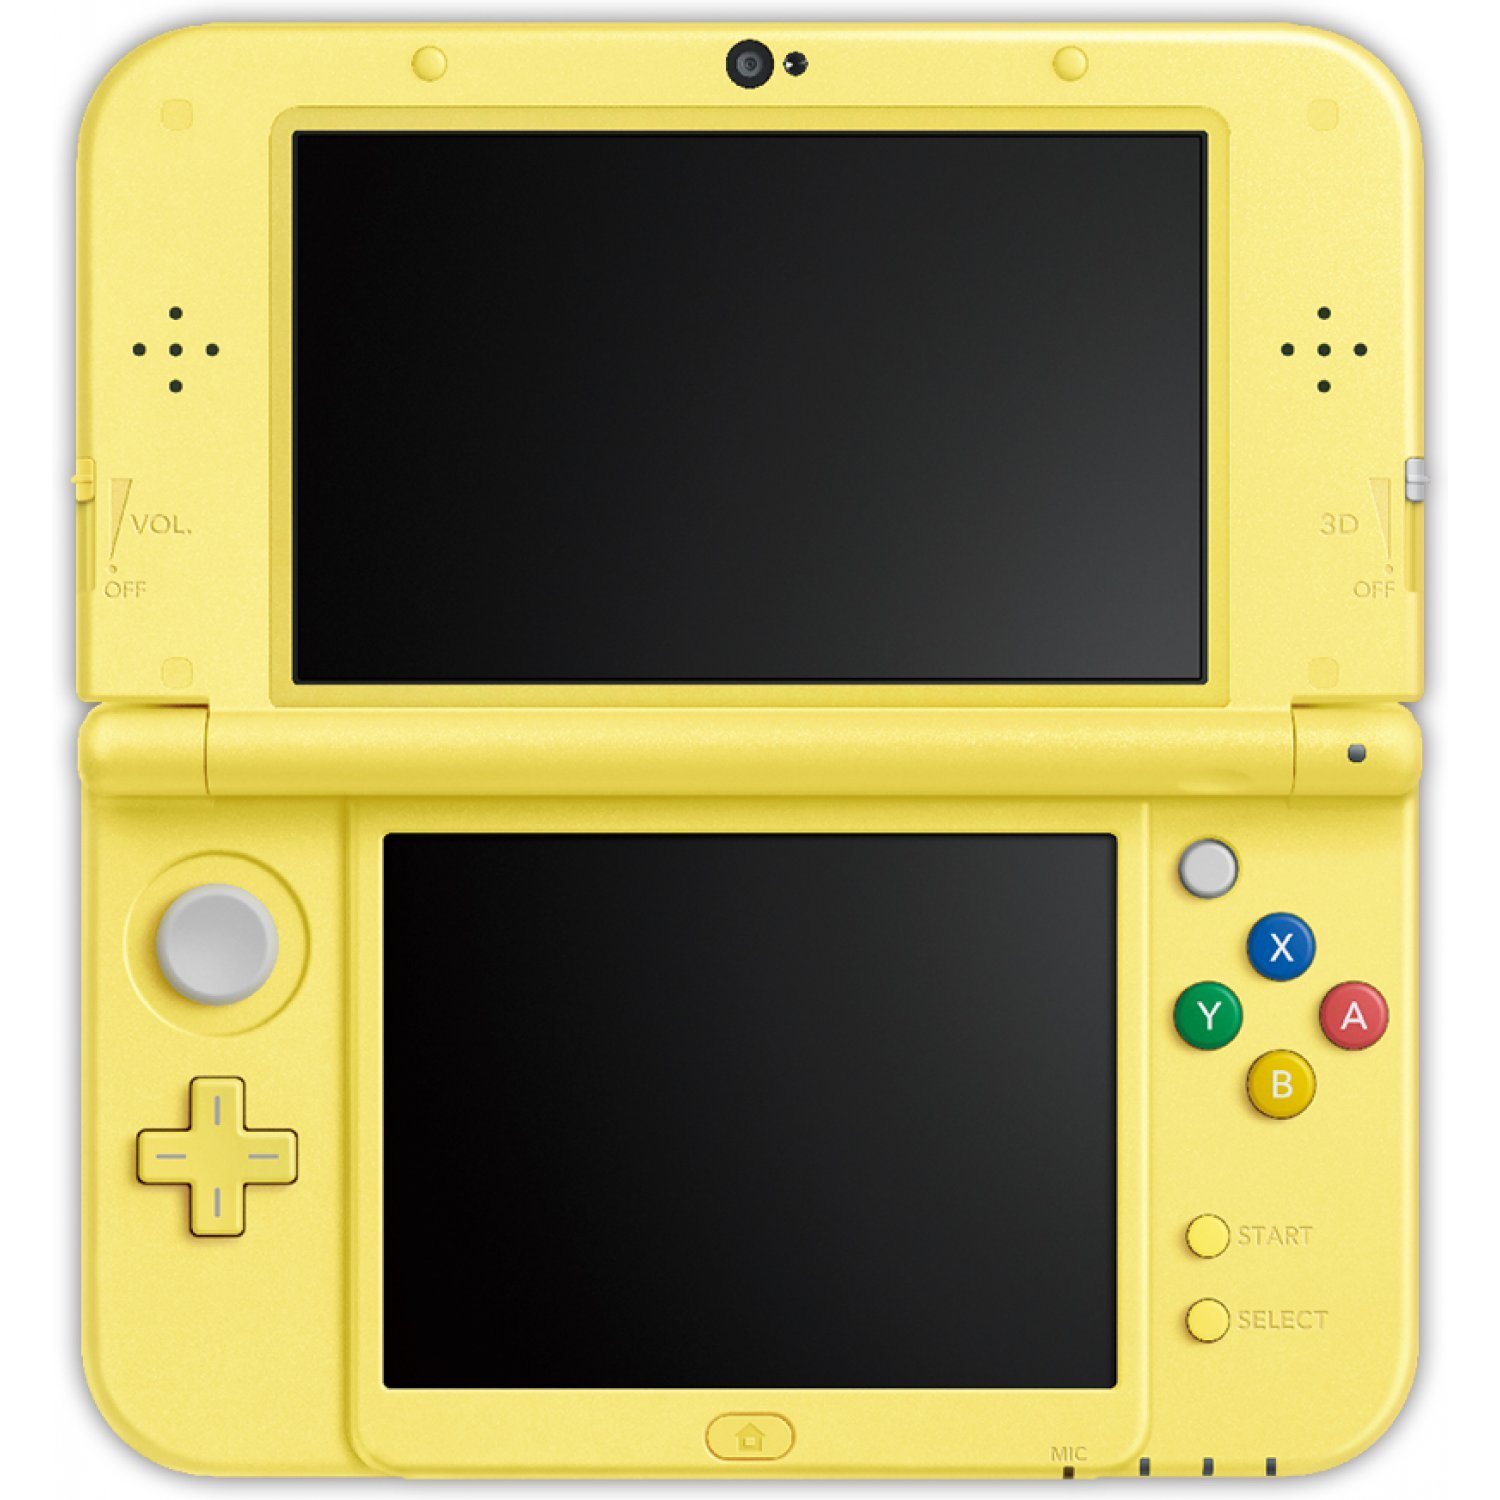 New nintendo 3ds console variations the database for all console.